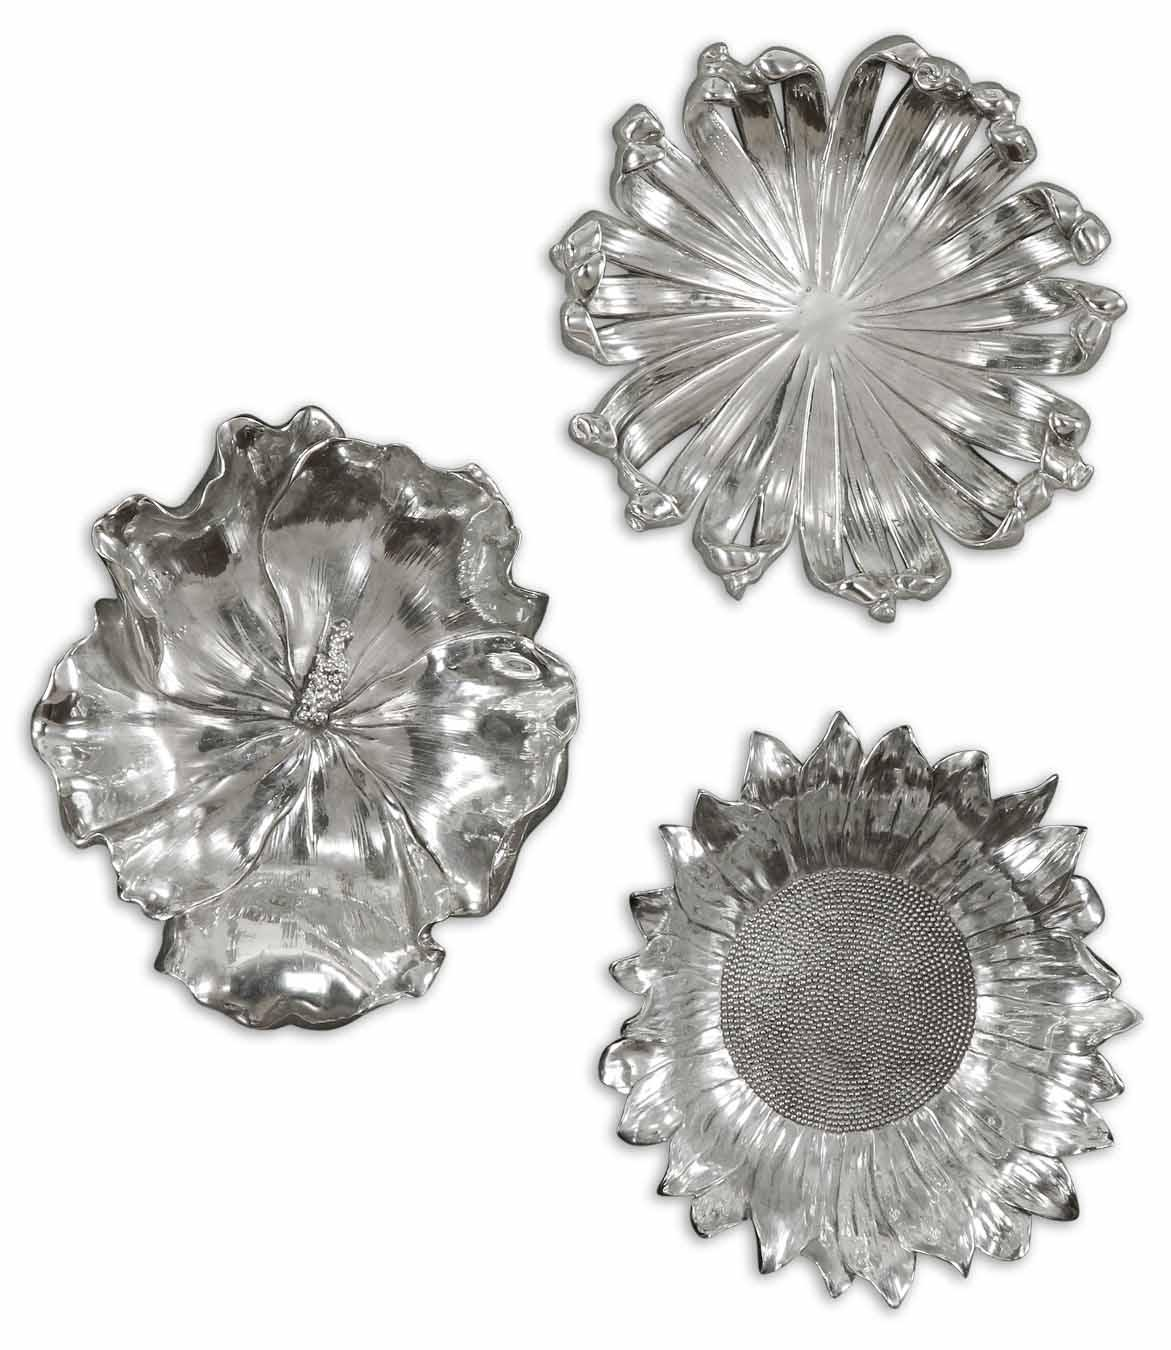 Uttermost Alternative Wall Decor Silver Flowers Set of 3 - Item Number: 08503